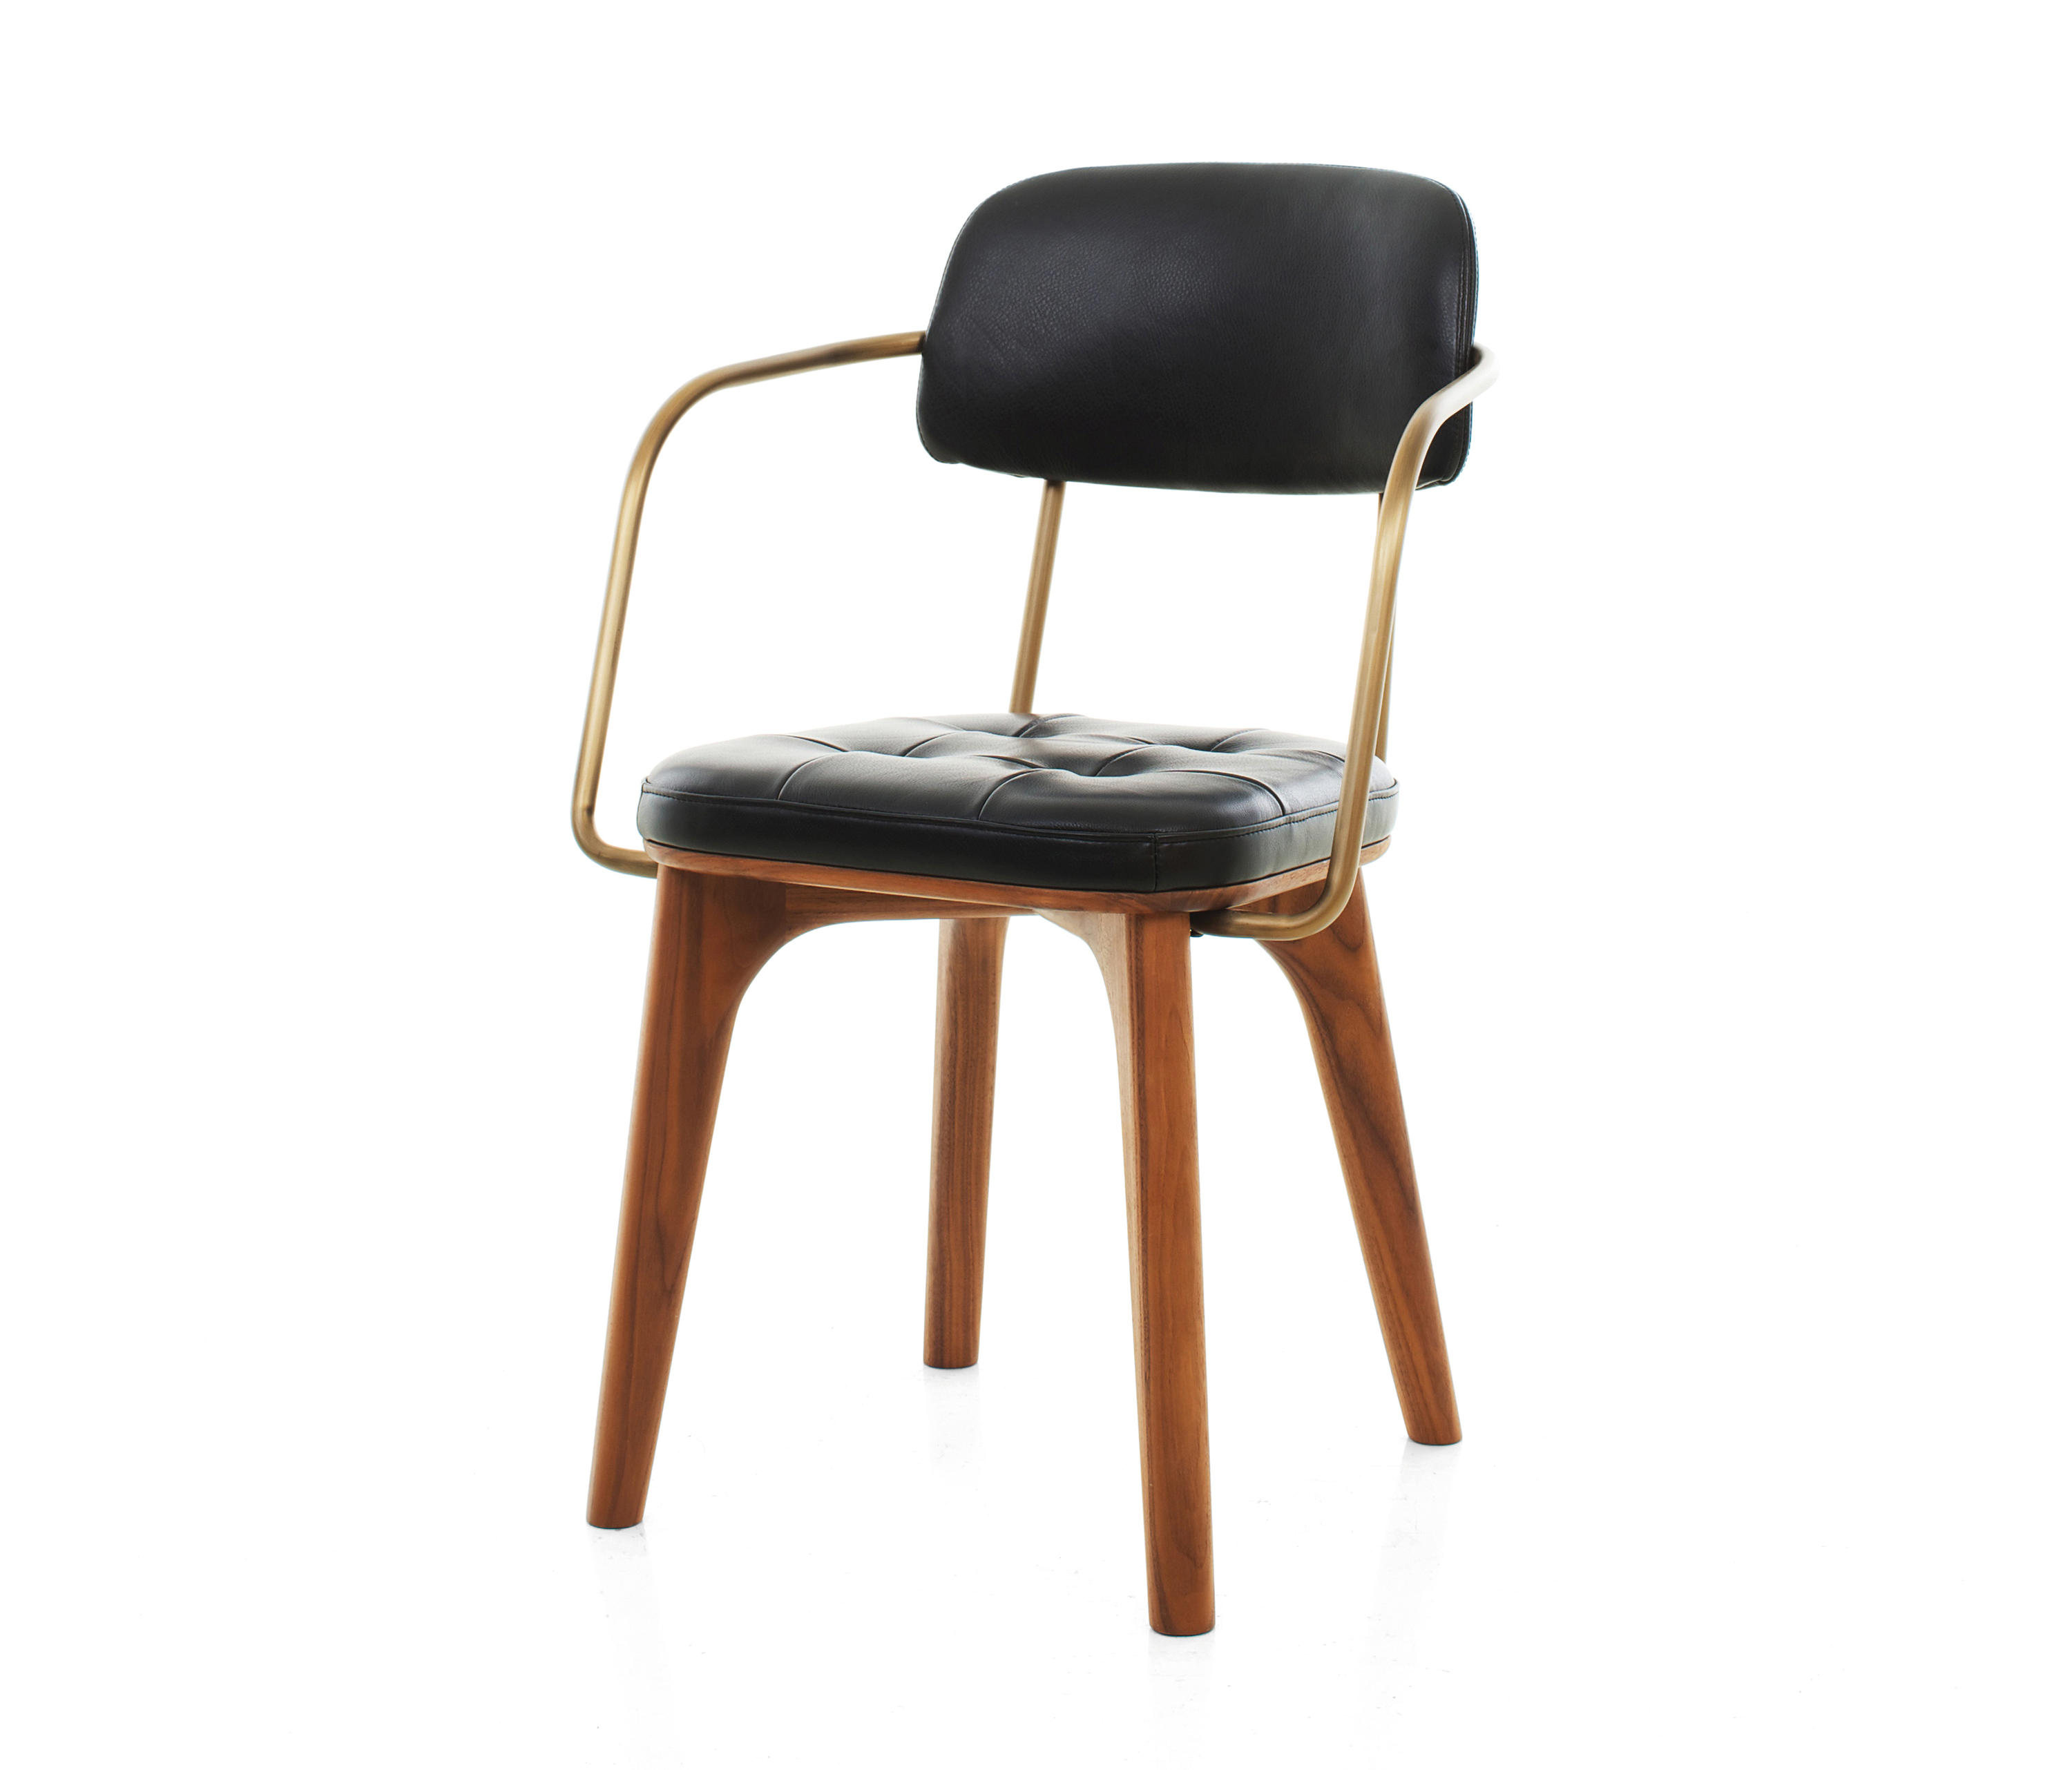 restaurant chair manufacturers. Utility Armchair U By Stellar Works | Restaurant Chairs Chair Manufacturers 4